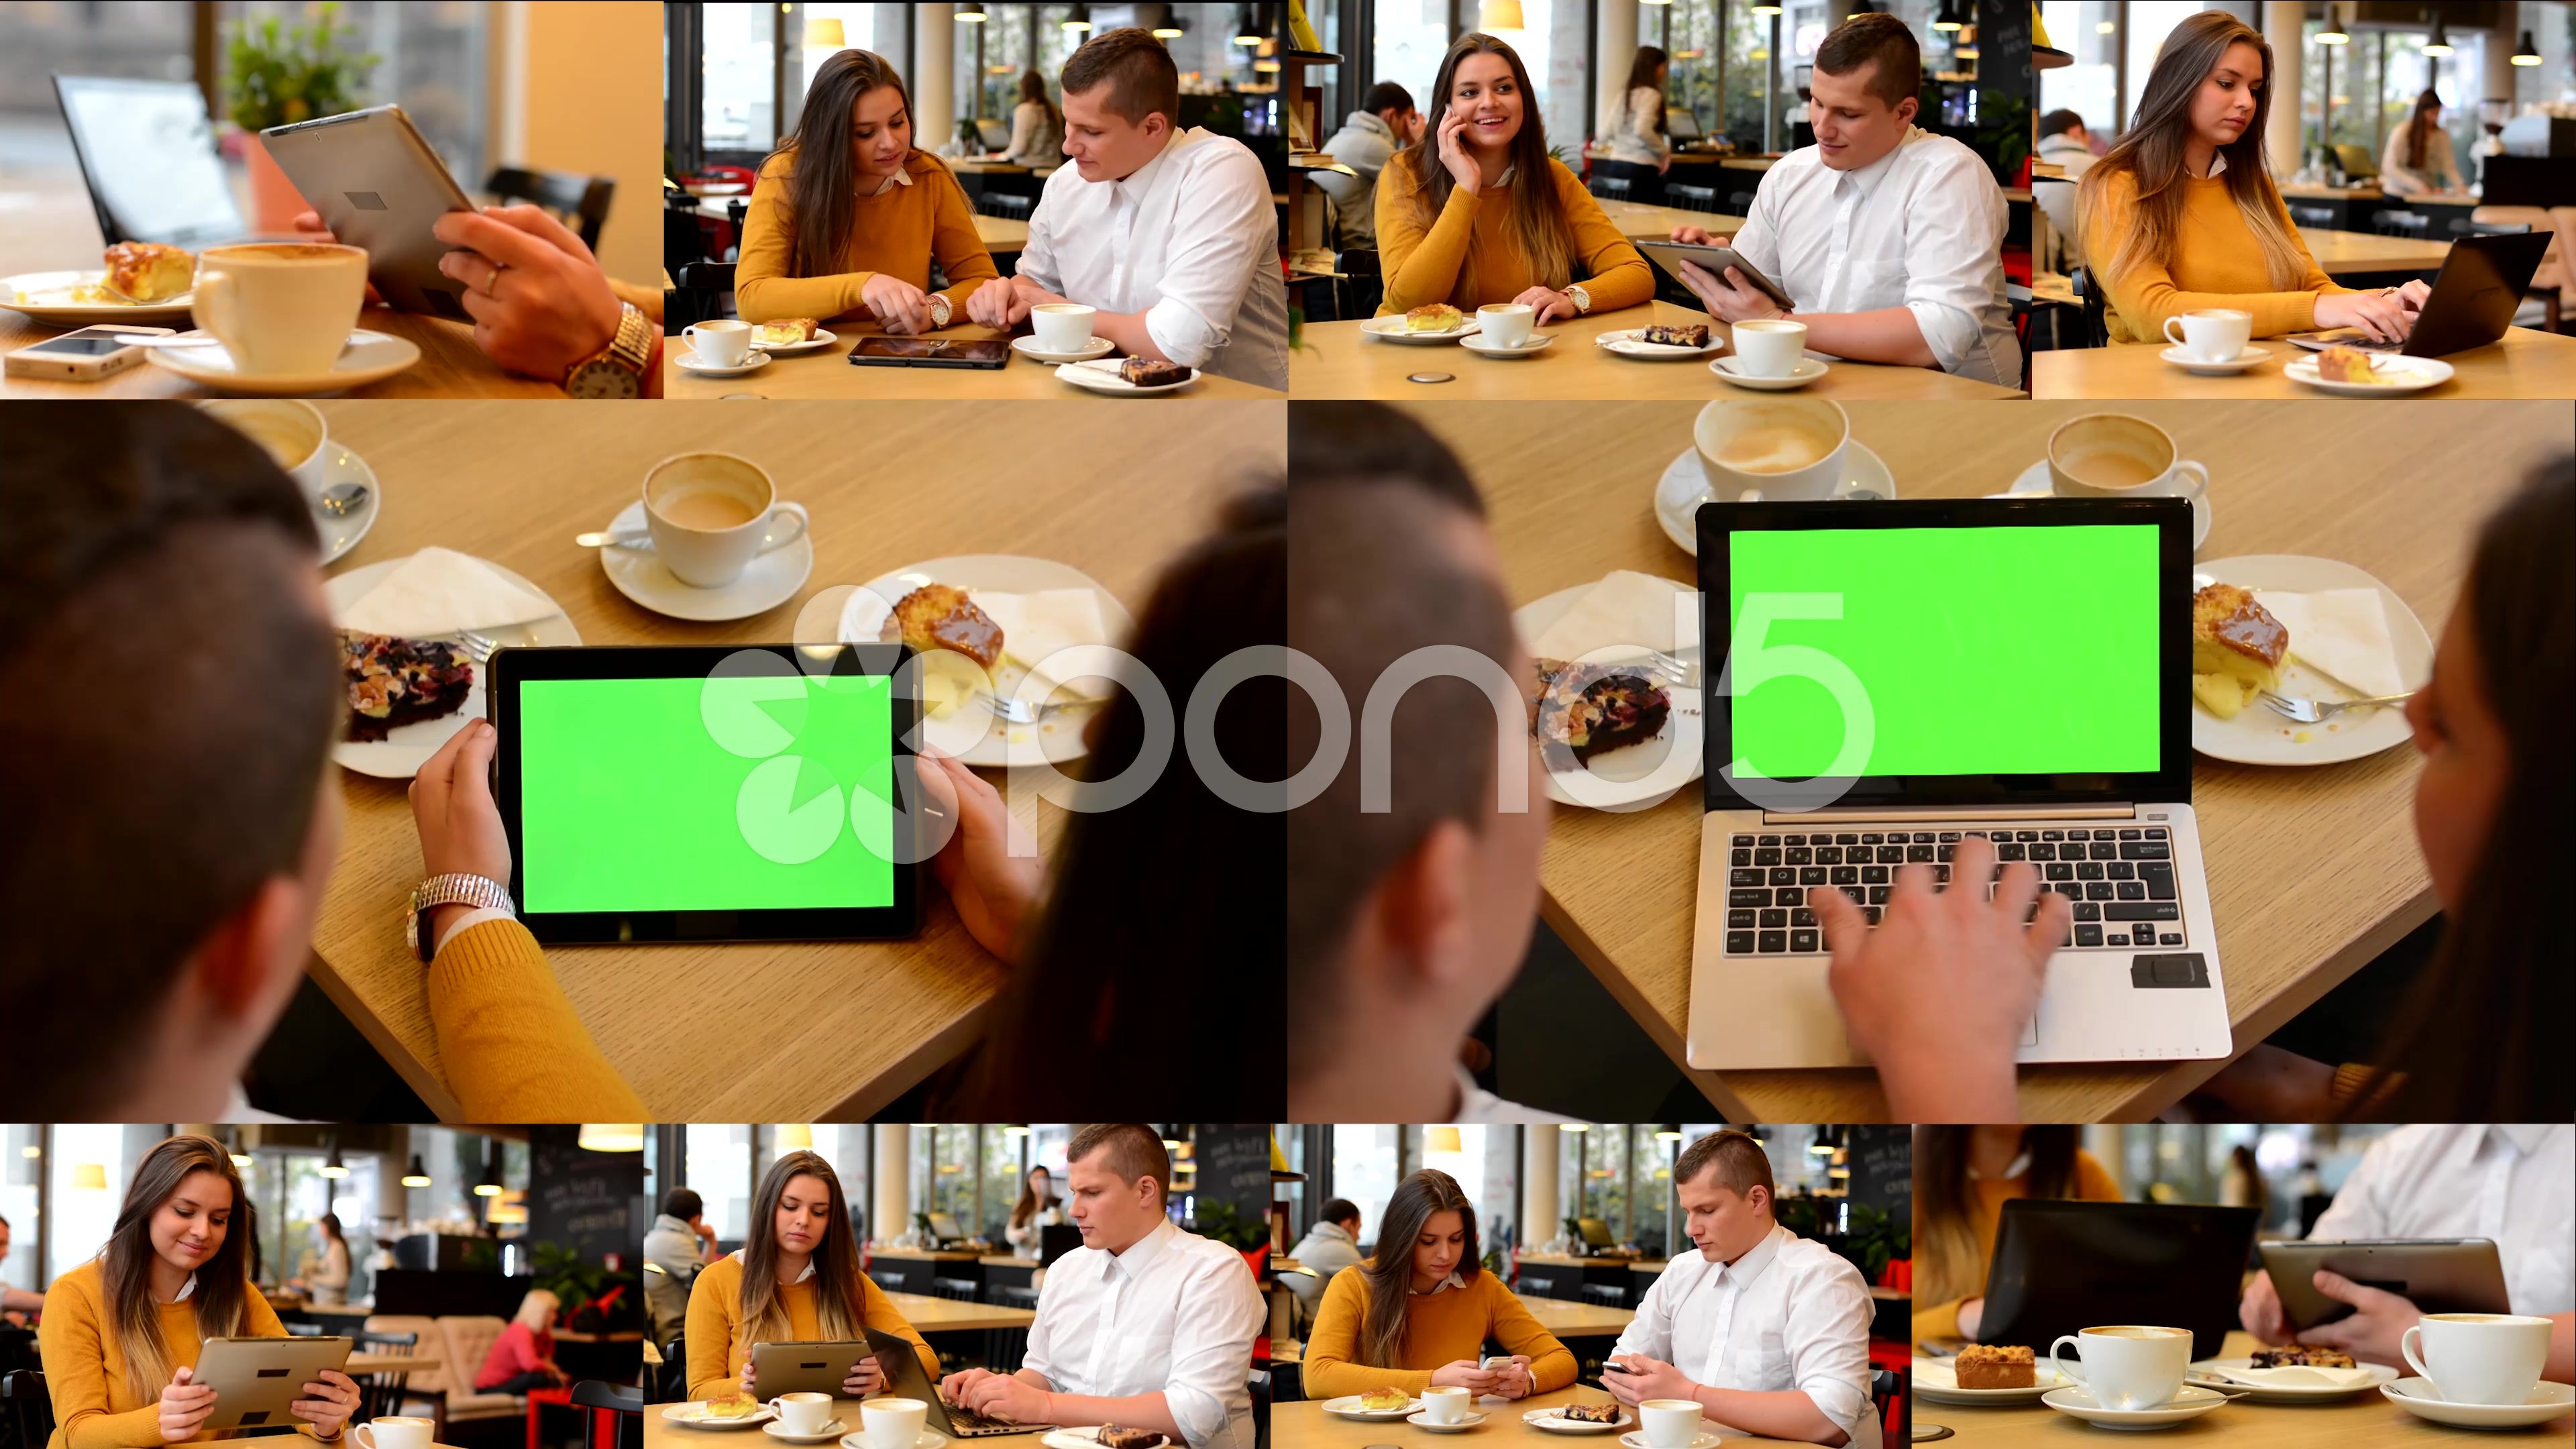 4k Montage 10 Videos Couple In Cafe Notebook And Tablet Green Screen Stock Footage Ad Couple Cafe Montage Videos In 2020 Montage Video Montage Greenscreen